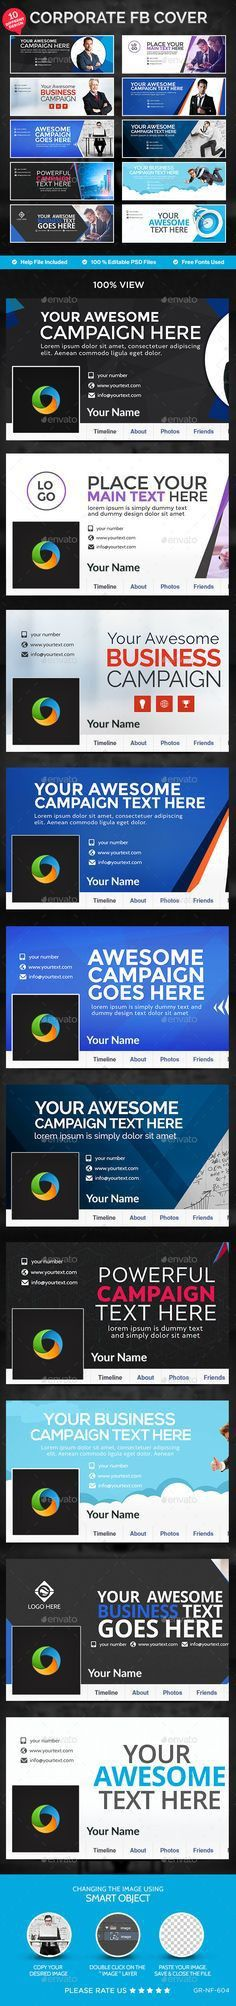 Facebook Cover | Facebook cover design, Cover template and ...